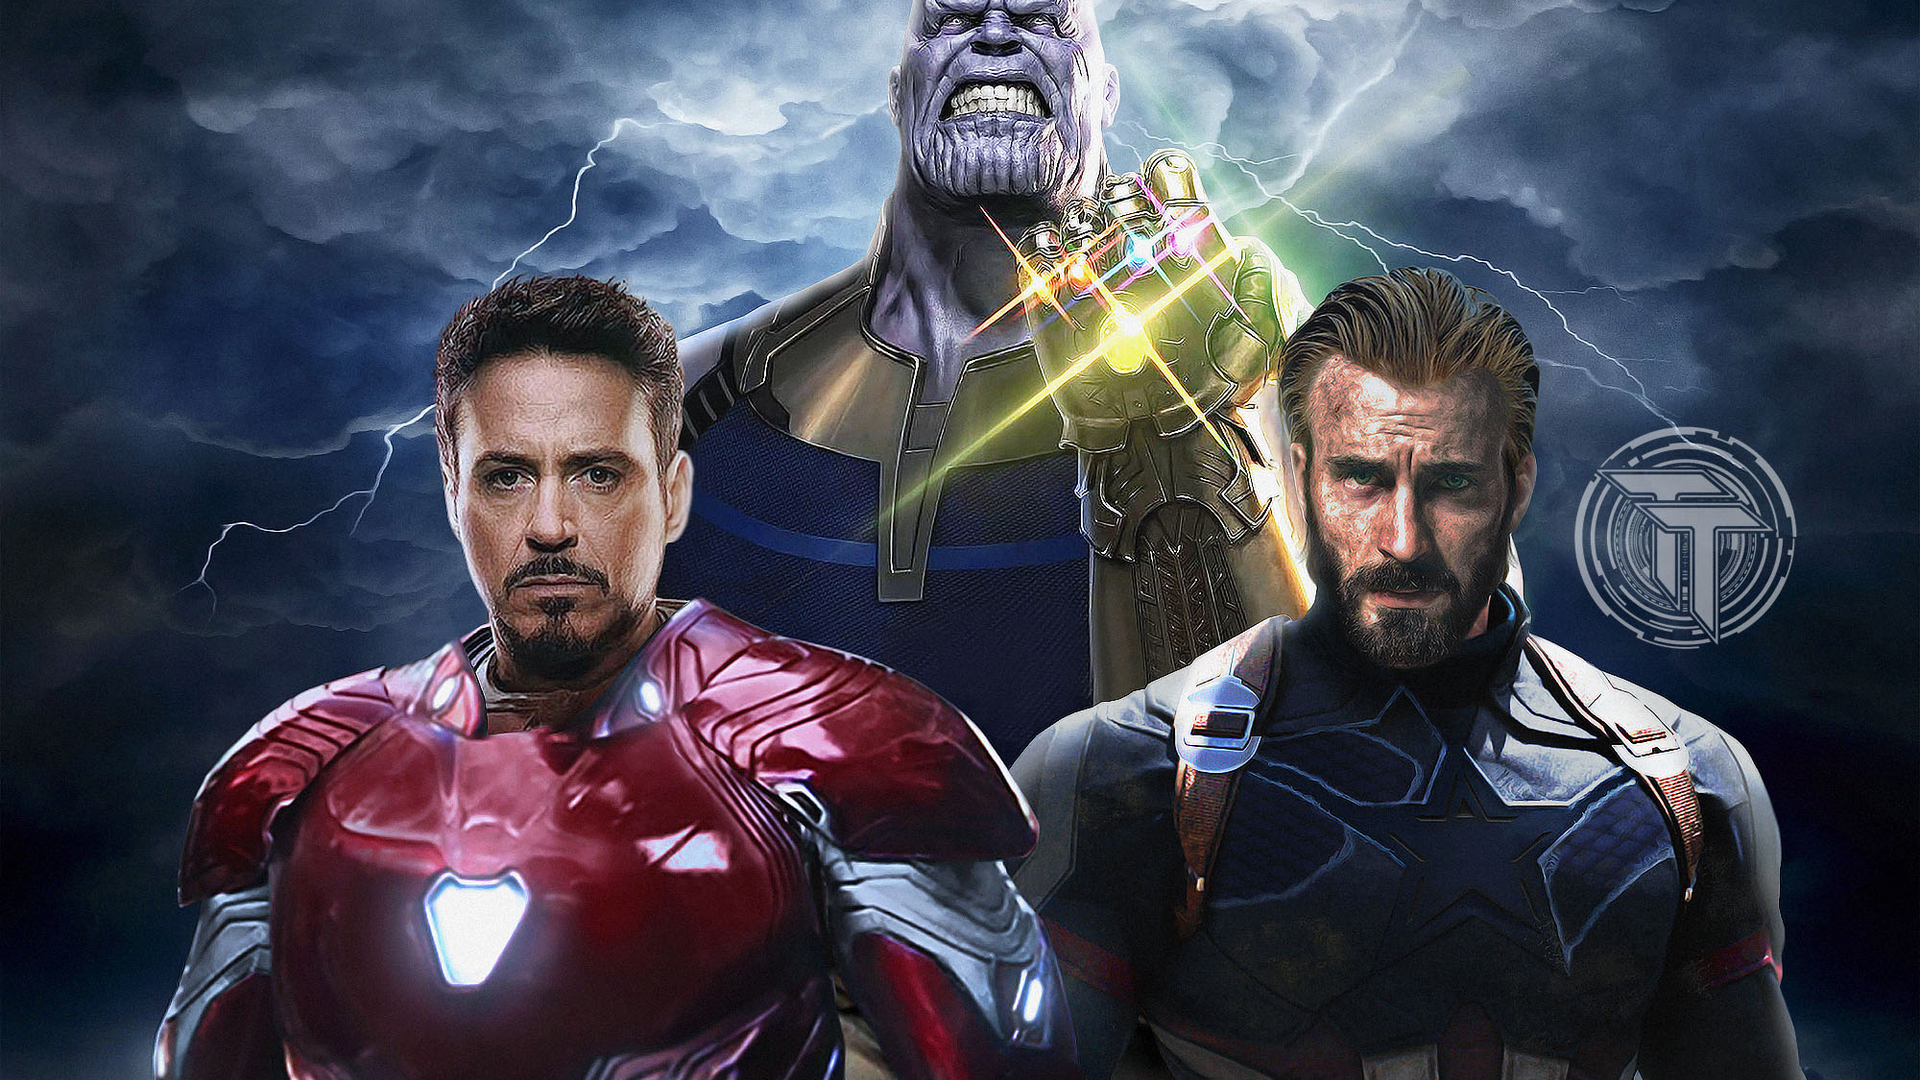 1920x1080 avengers infinity war captain america iron man thanos